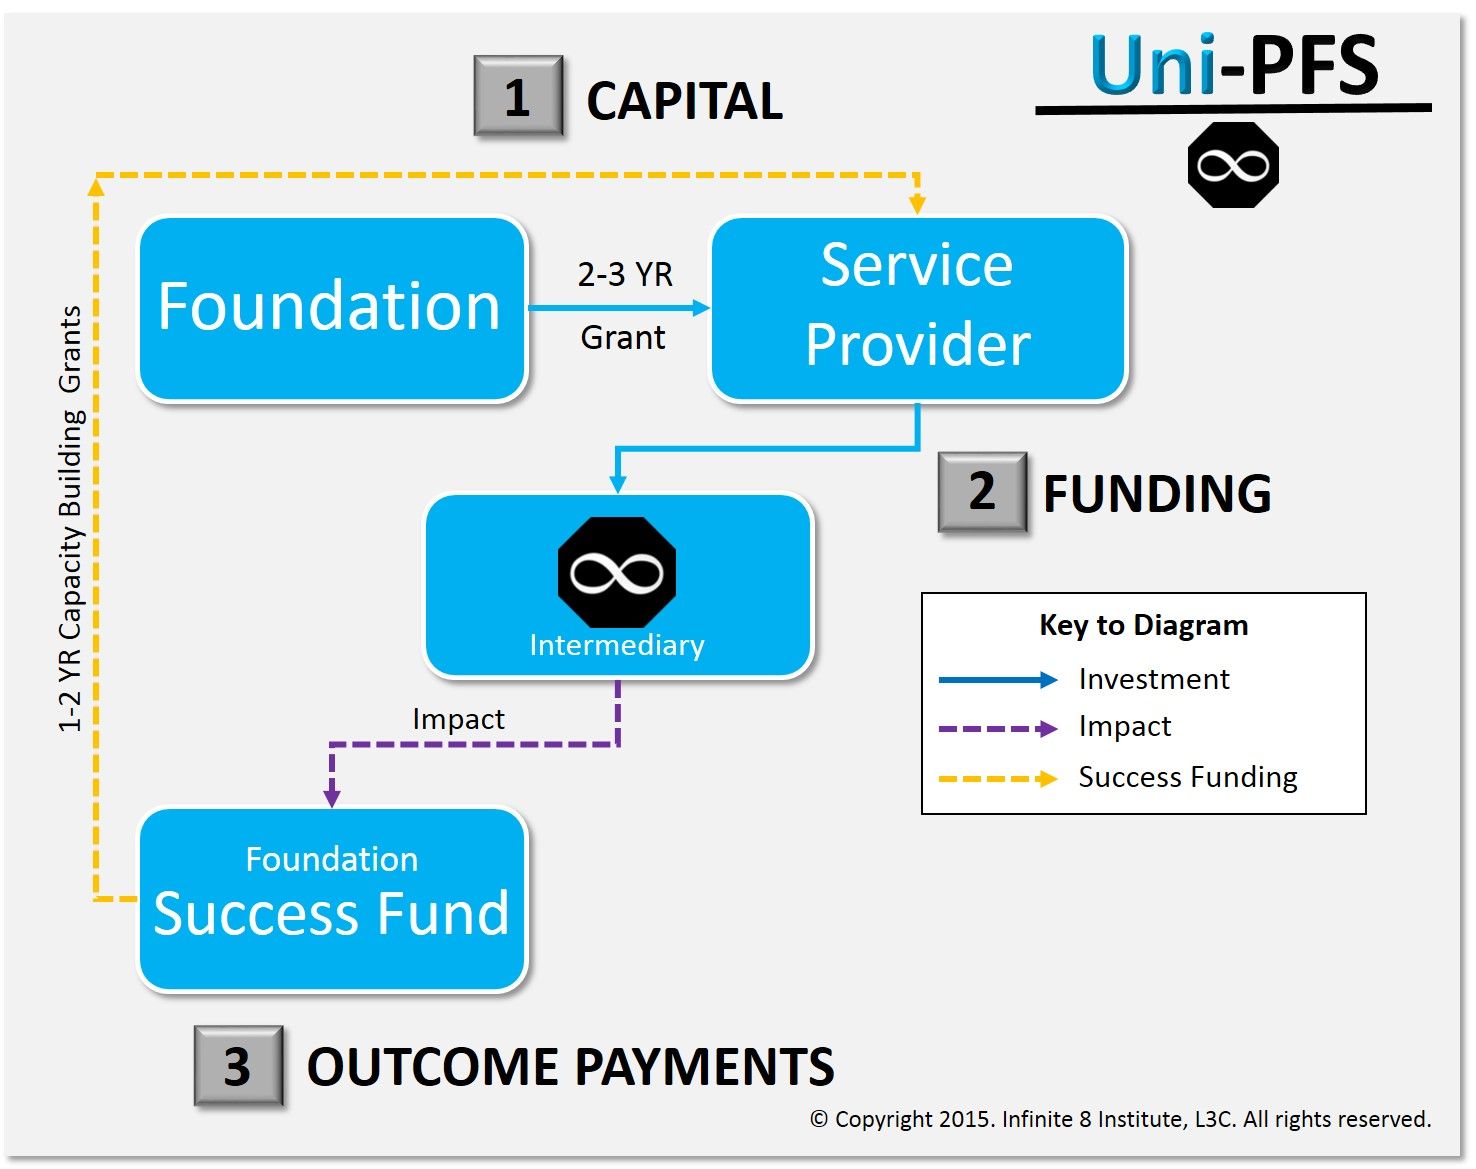 The Uni-PFS Model 1.0 is a foundation-based social finance product of Infinite 8 Institute, L3C.